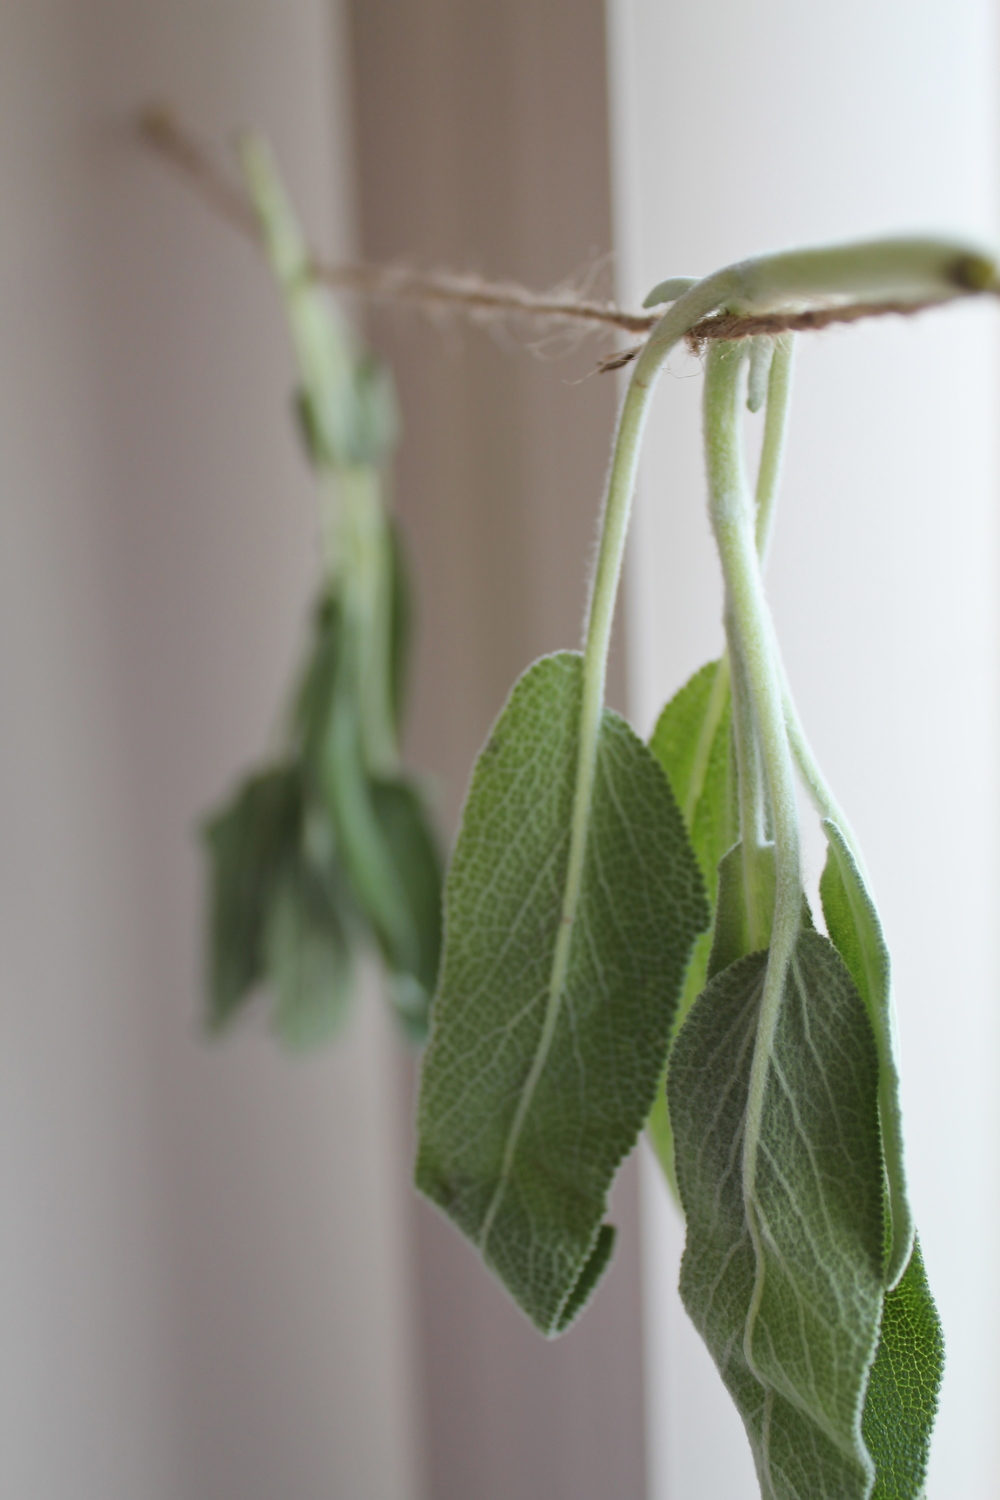 diy sage peppermint toothpaste botanical medicine recipe